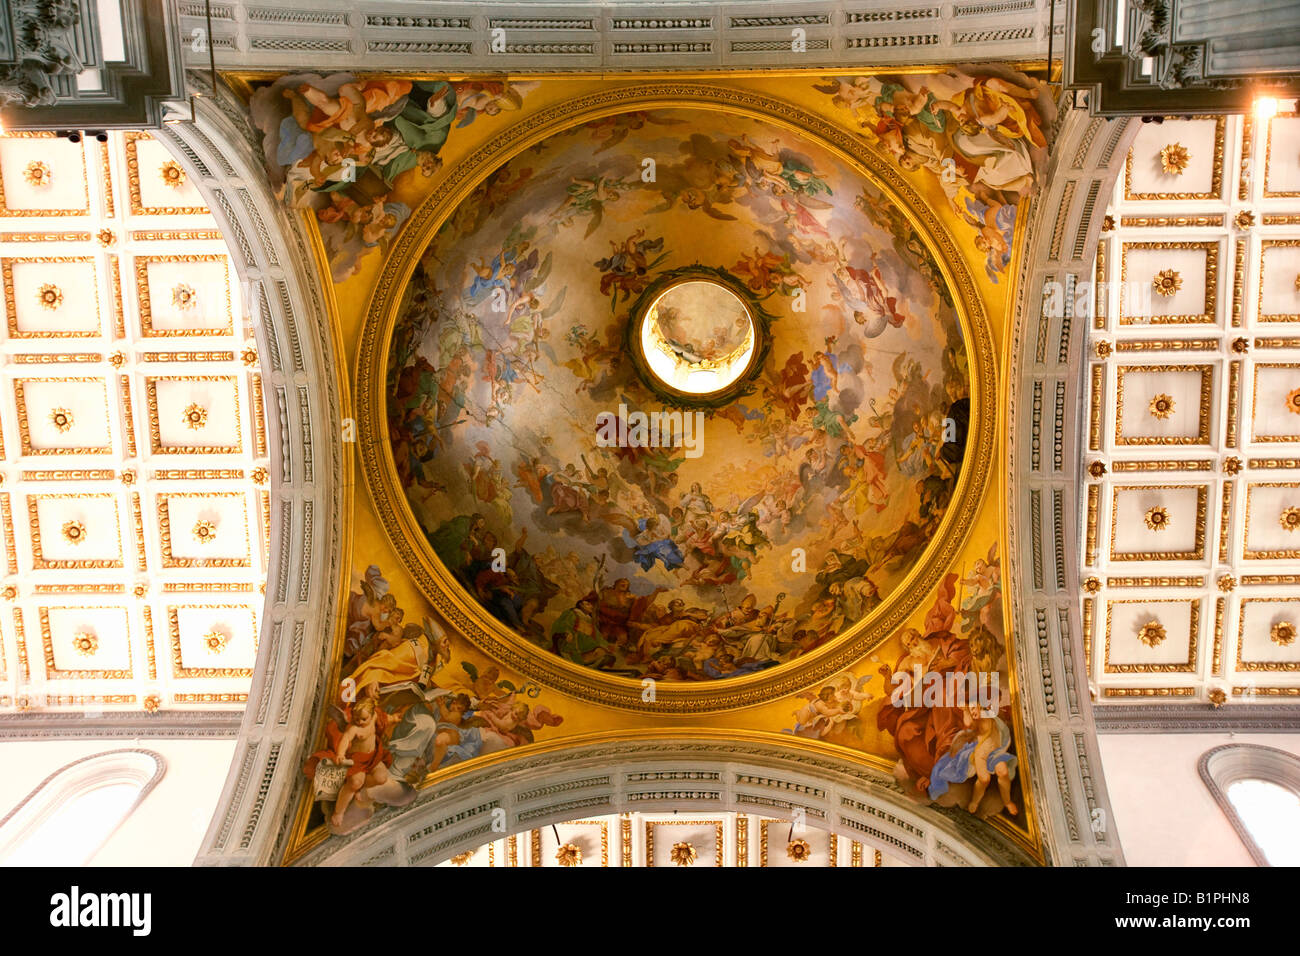 the dome of san lorenzo church in florence stock photo all free download vector ai all free downloads vector art